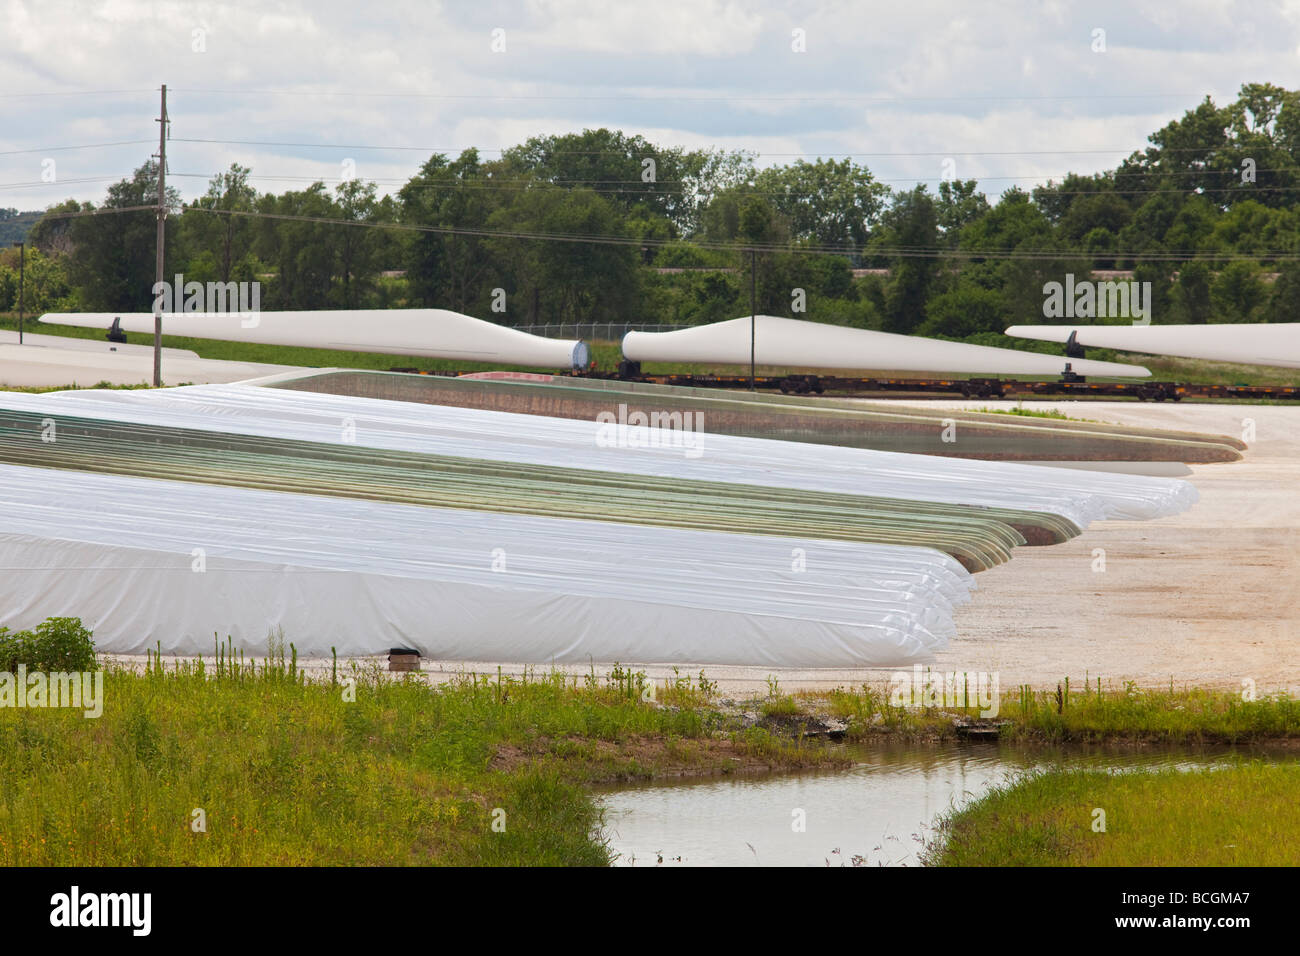 Fort Madison Iowa Wind turbine blades at the Siemens Energy Fort Madison Blade Plant - Stock Image